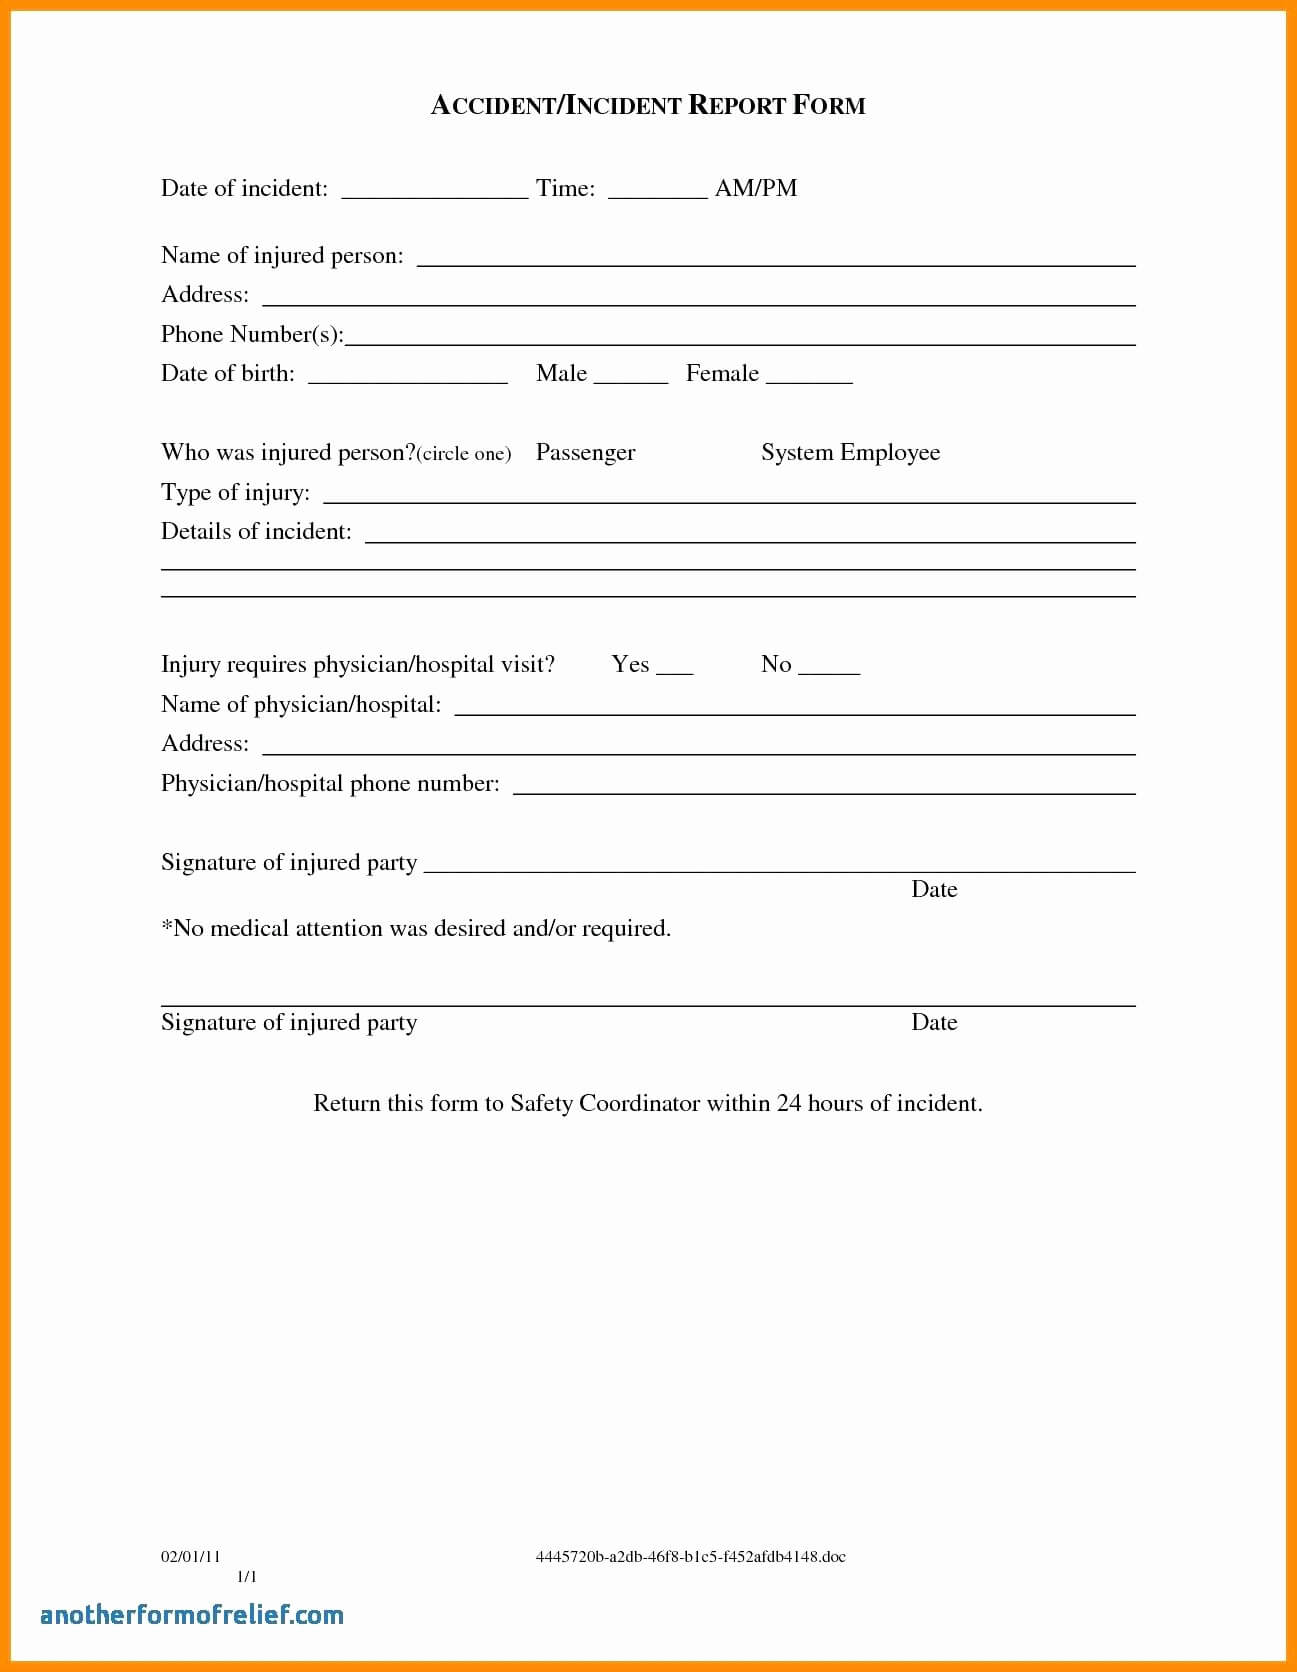 003 Template Ideas Incident Reportm Accidentms Hazard intended for Incident Hazard Report Form Template